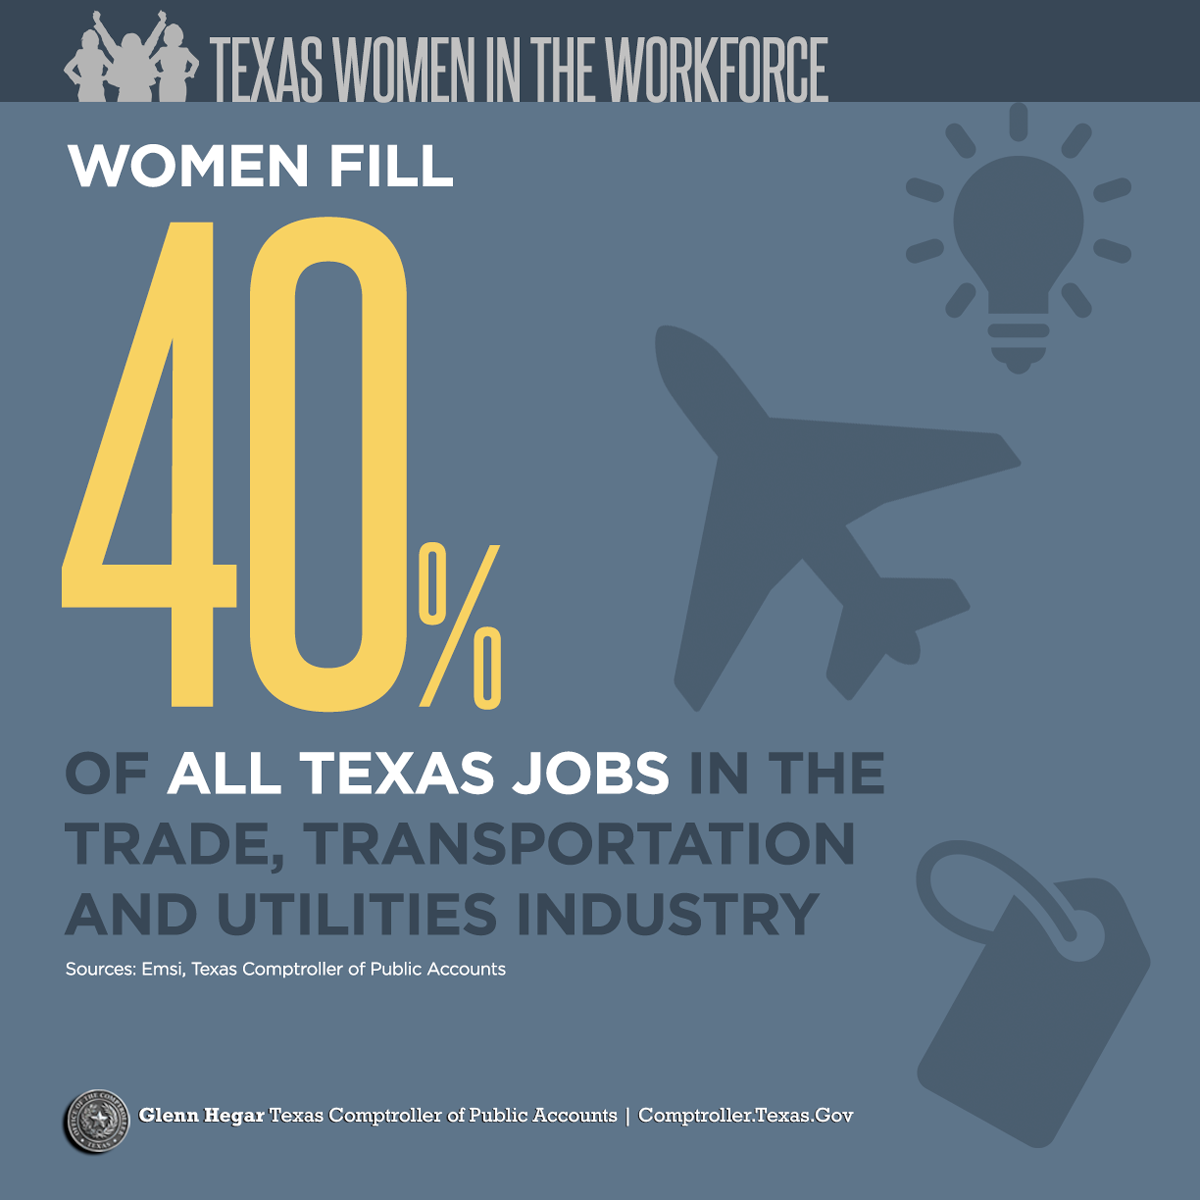 Texas Women in the Workforce -  Women fill 40% of all Texas jobs in the trade, transportation and utilities industry Sources: Emsi, Texas Comptroller of Public Accounts